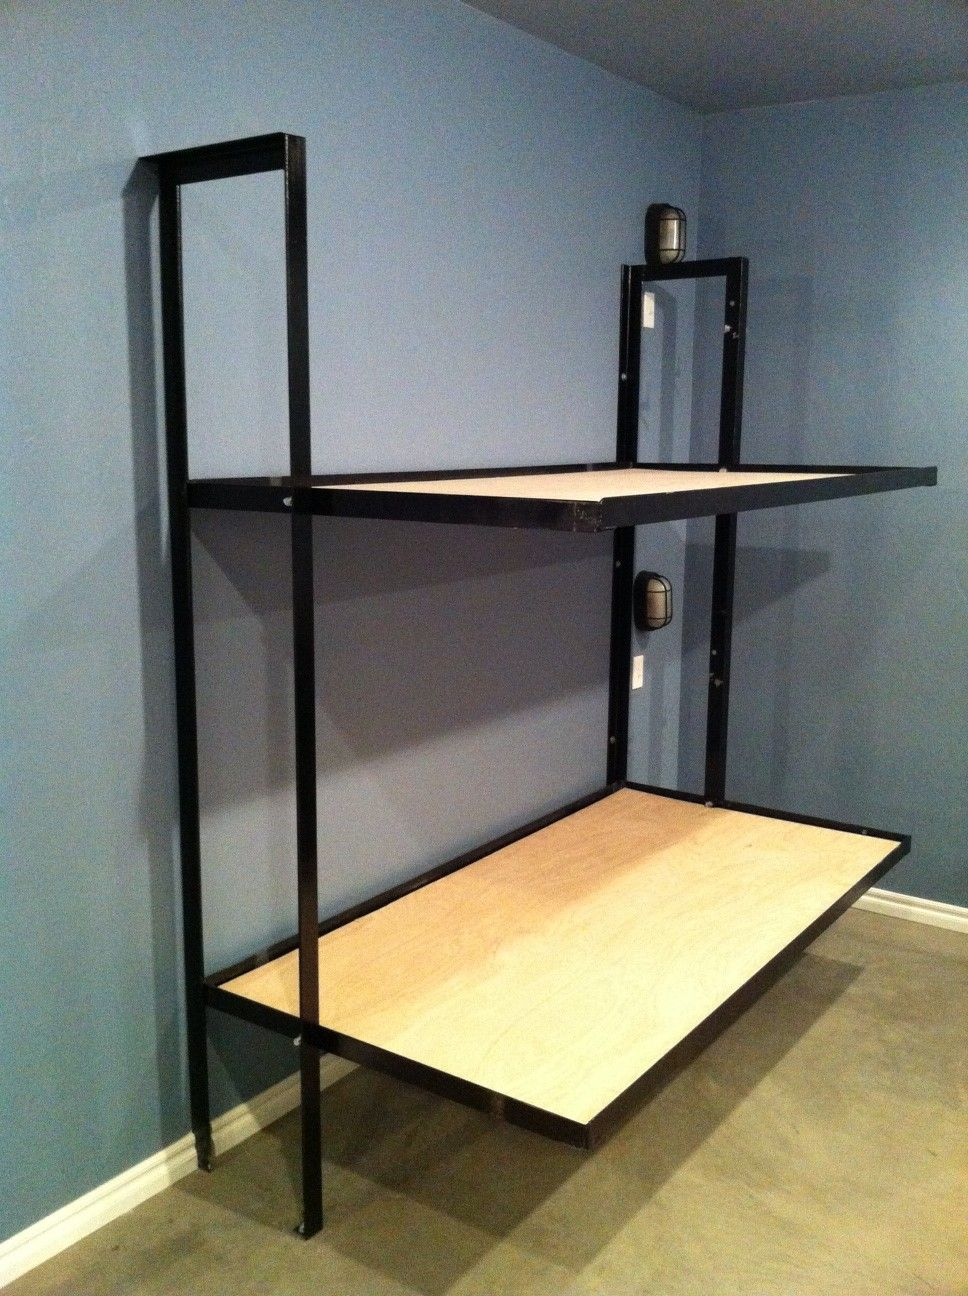 Murphy Bunk Beds That Fold Up Into The Wall To Be Ultra Compact For